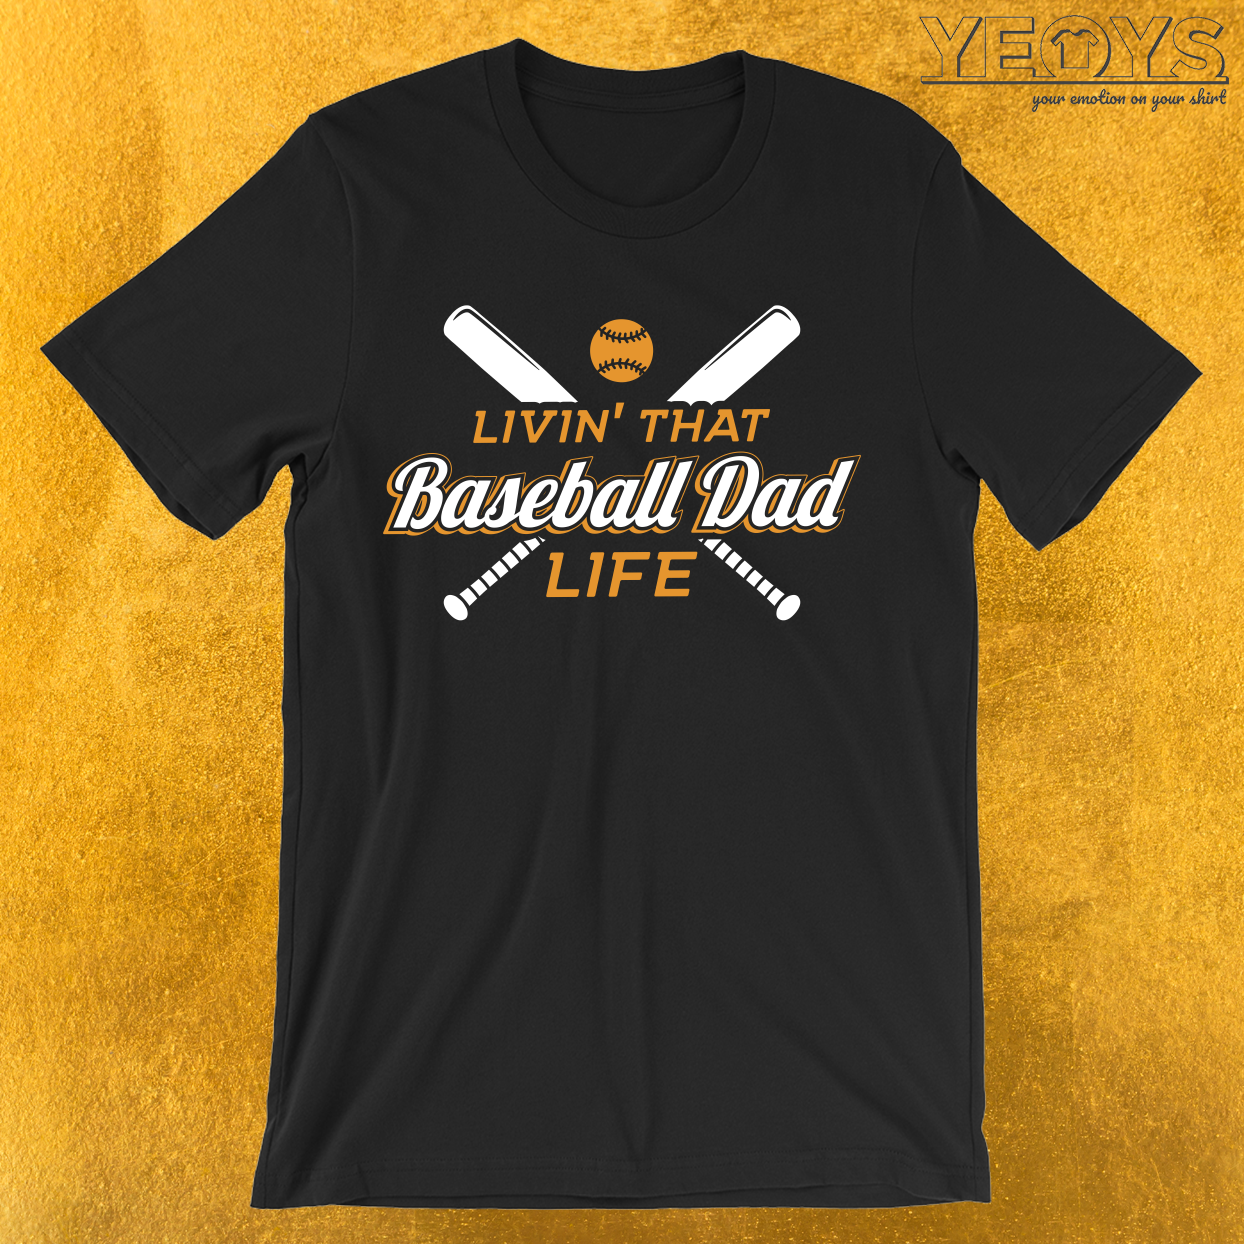 Livin' That Baseball Dad Life T-Shirt